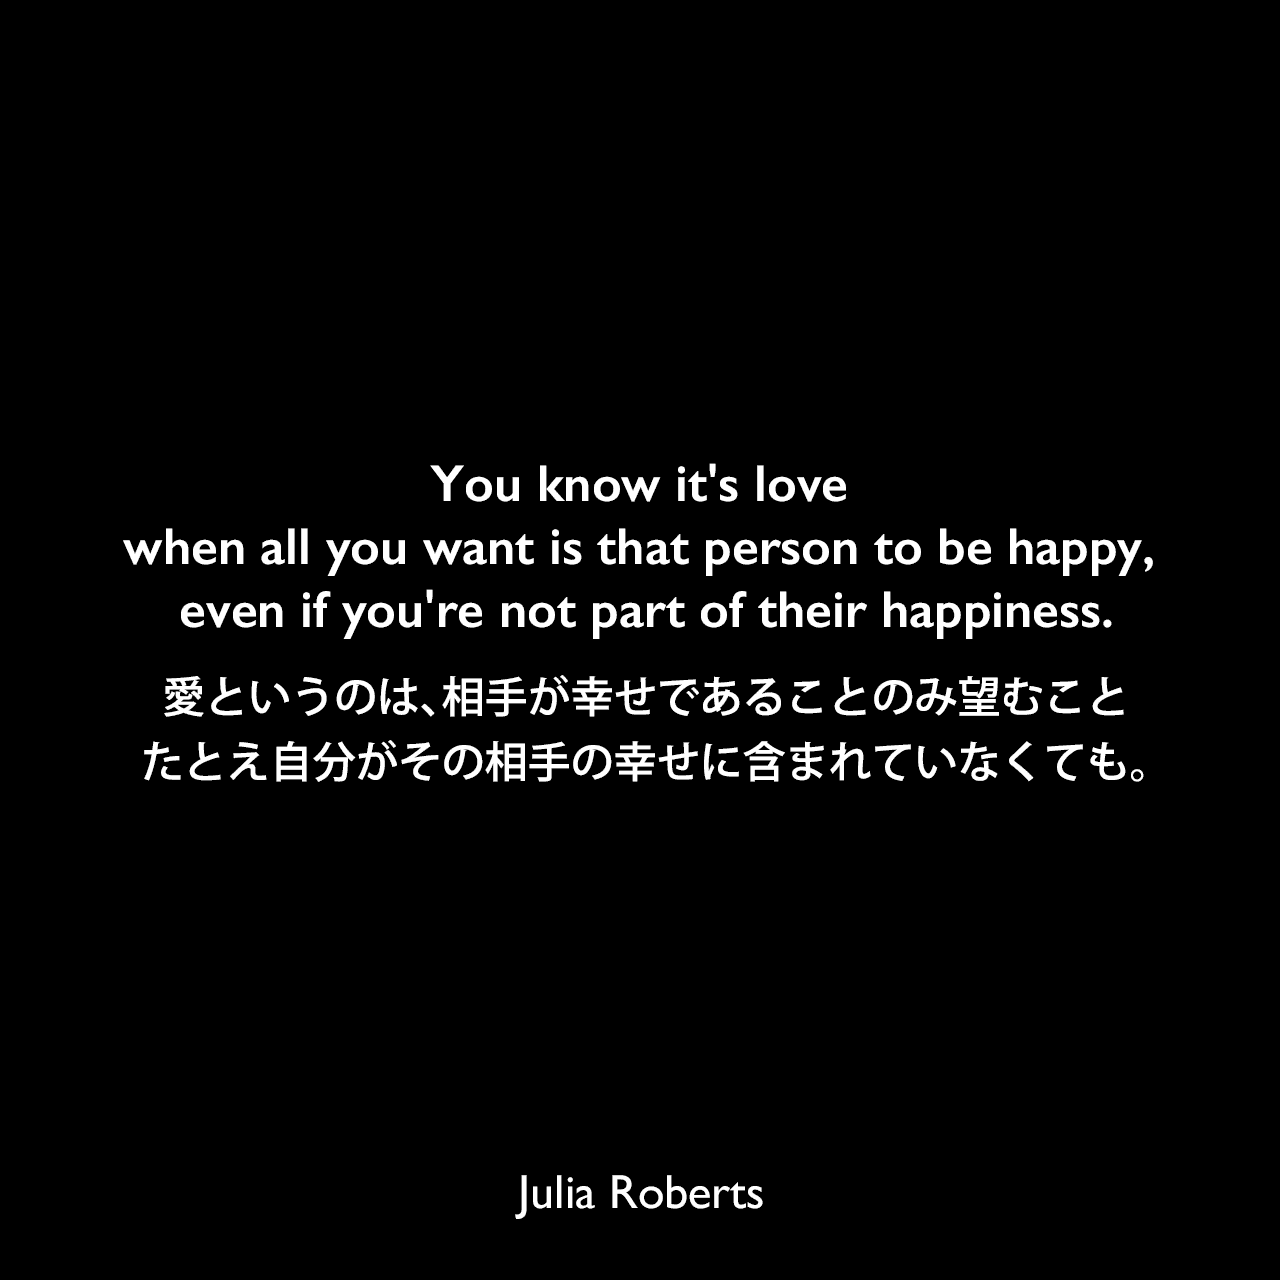 You know it's love when all you want is that person to be happy, even if you're not part of their happiness.愛というのは、相手が幸せであることのみ望むこと、たとえ自分がその相手の幸せに含まれていなくても。